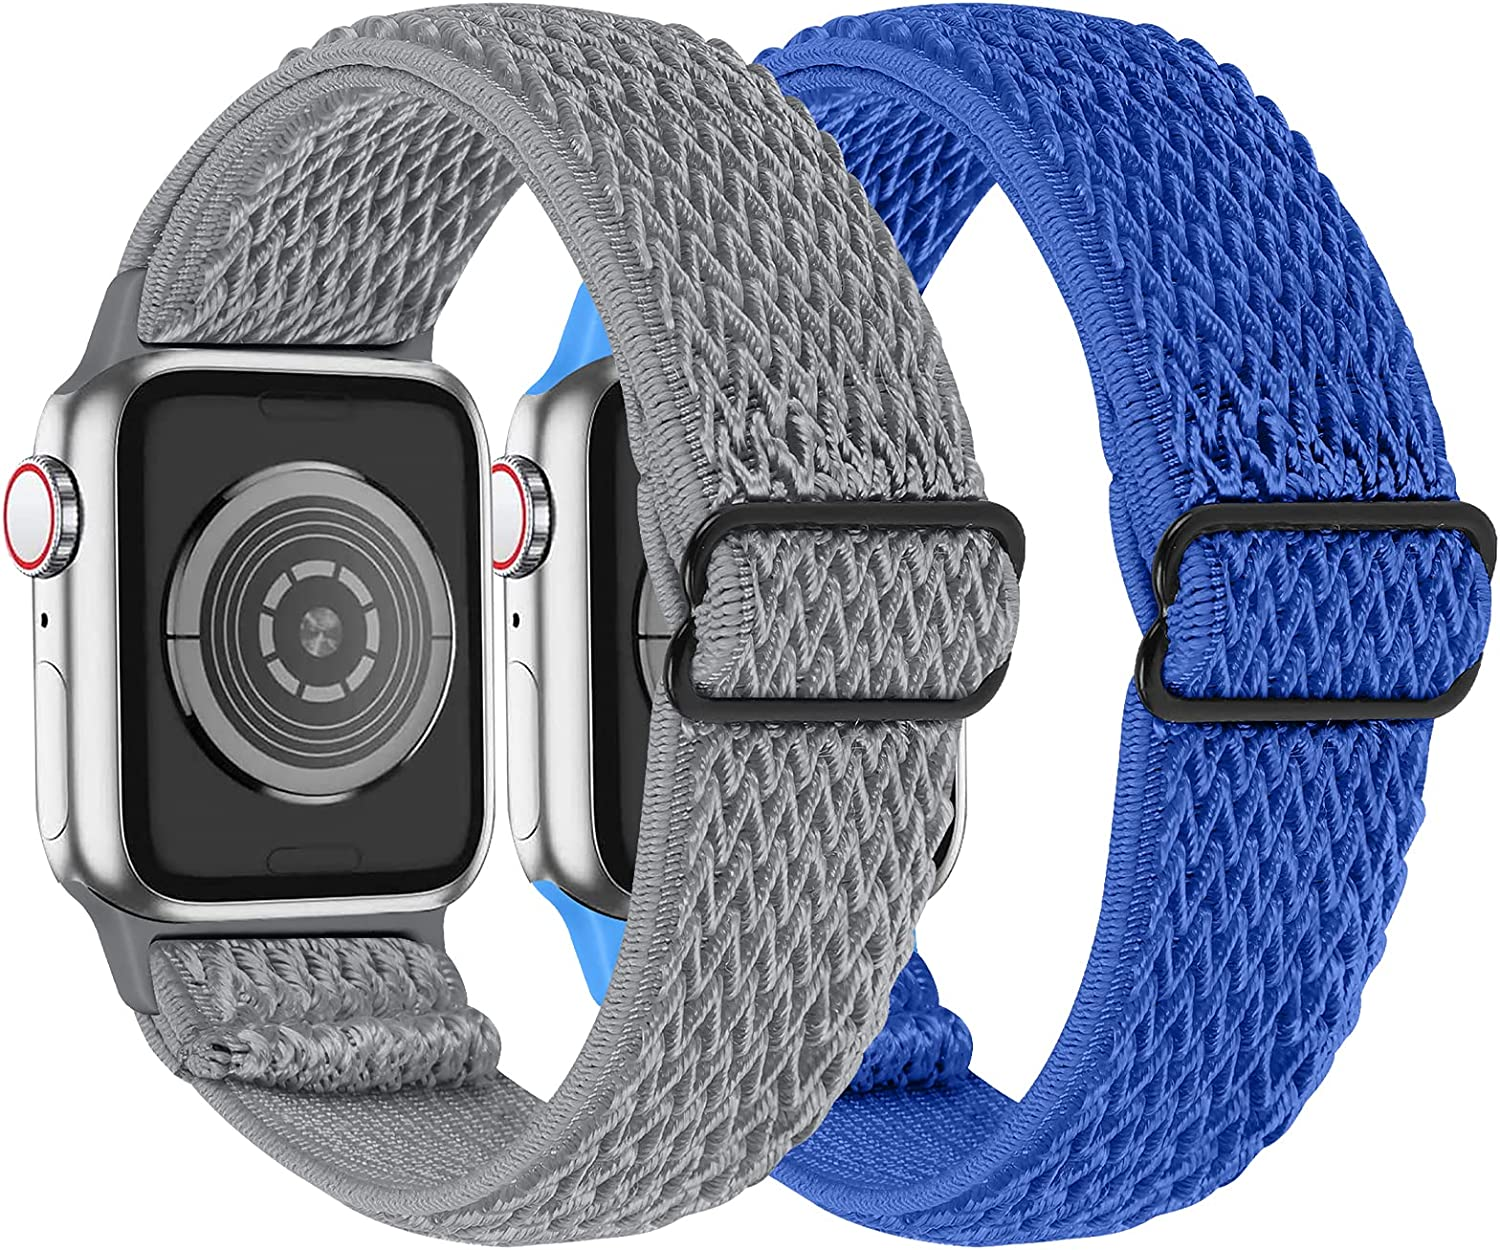 MEFEO 2 Pack Stretchy Solo Loop Strap Compatible with Apple Watch Bands 38mm 40mm 42mm 44mm, Adjustable Elastic Nylon Wristband Replacement for iWatch Series 6/SE/5/4/3/2/1 (Gray+Royal Blue,42mm/44mm)